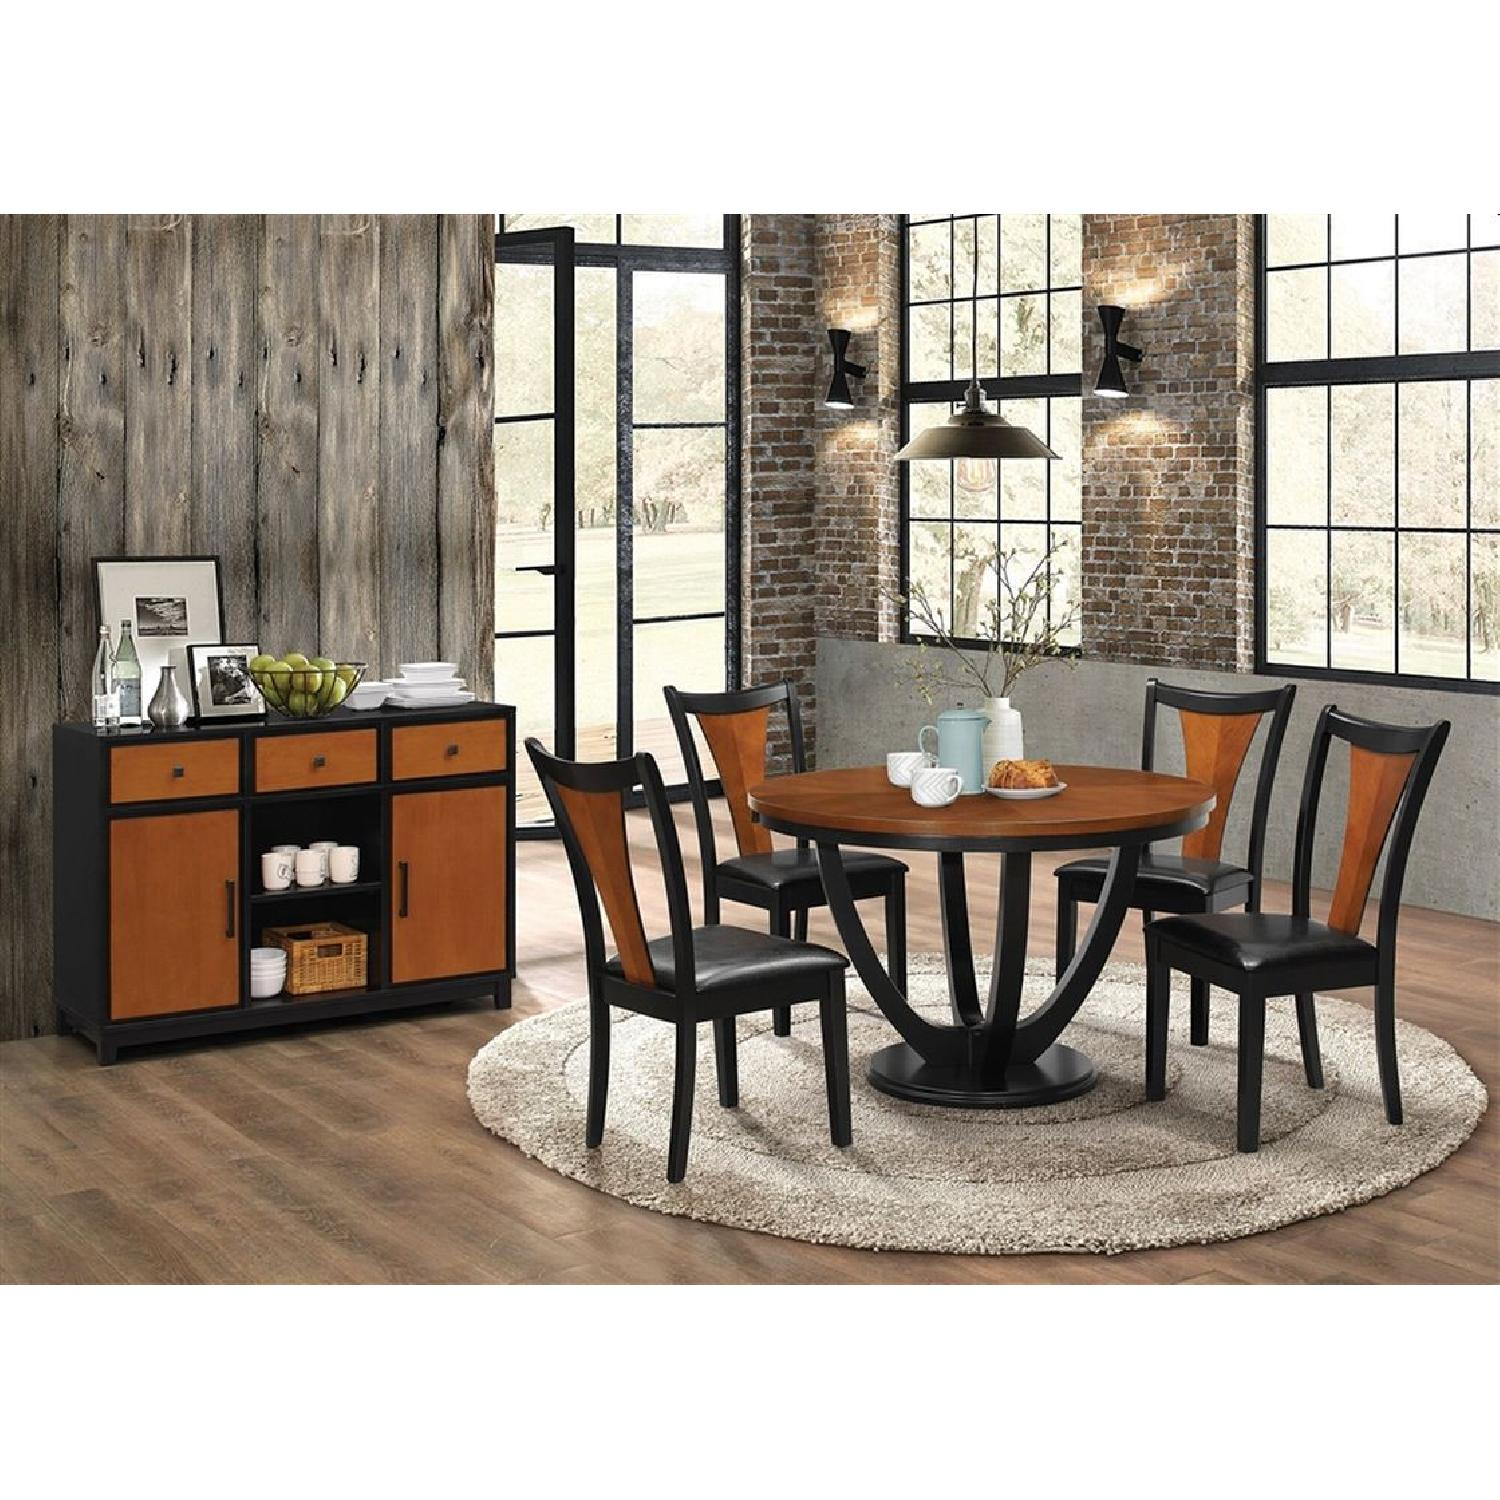 Bohemian Style Round Dining Table w/ Hand-Hammered Iron Top - image-21